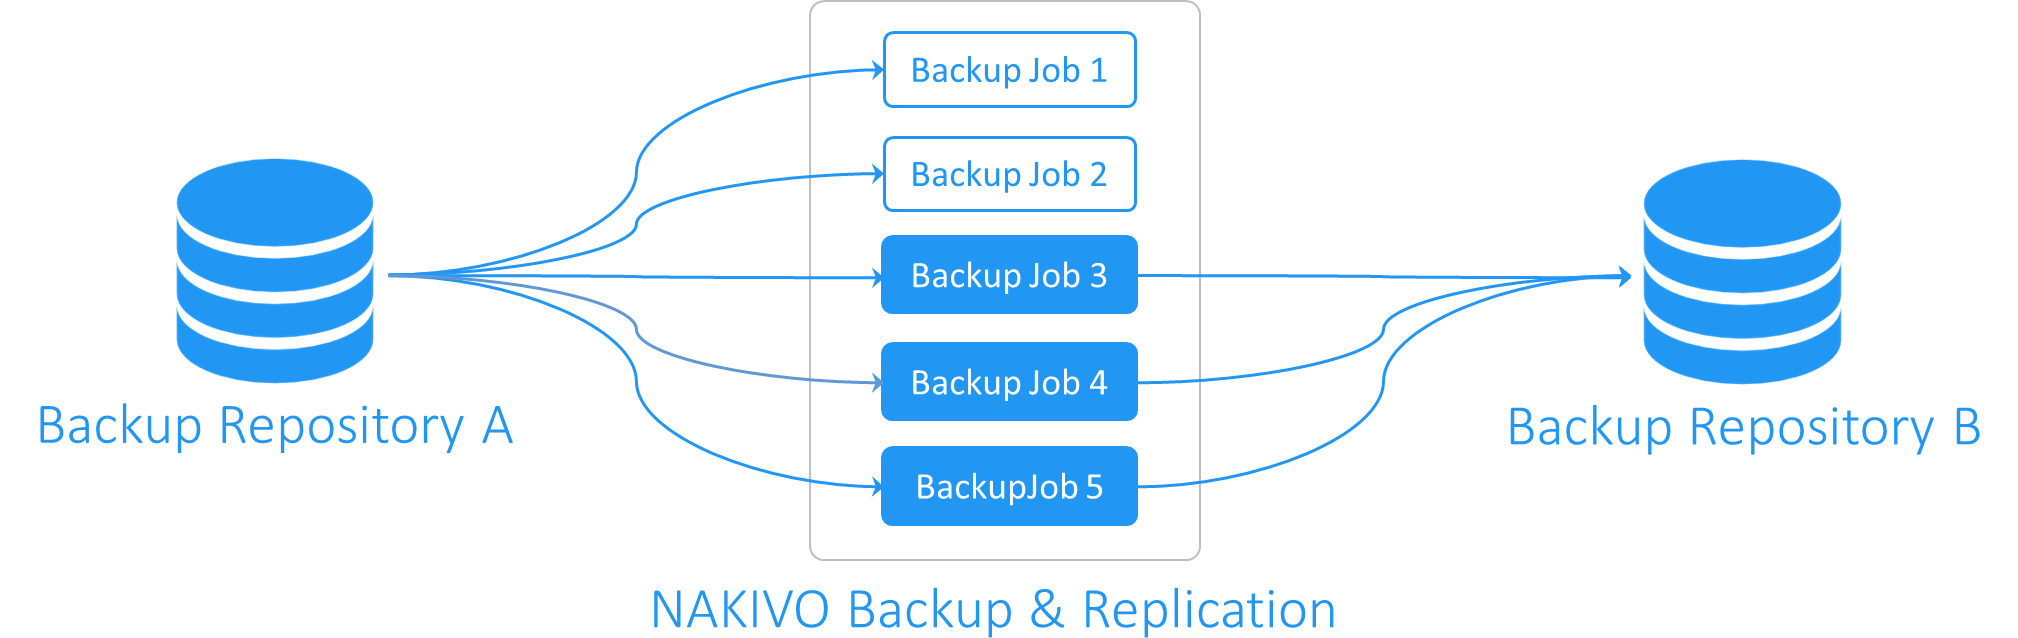 Protect Backups Created by Particular Backup Jobs